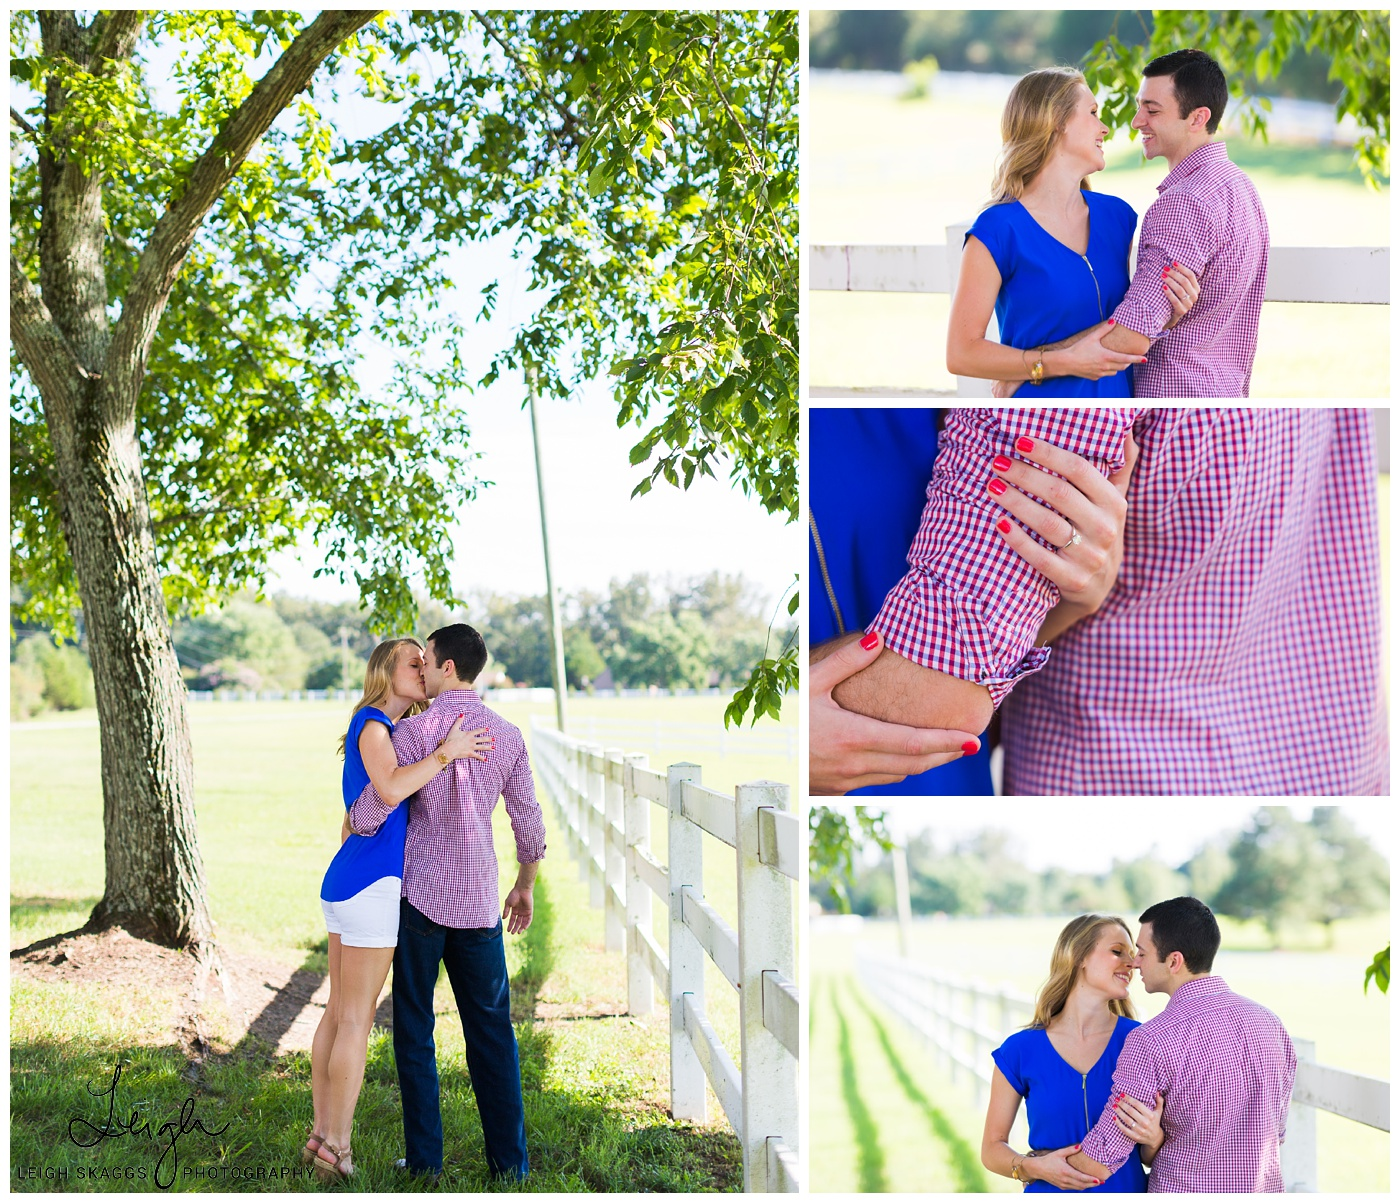 Catherine & Ben | Amber Grove Engagement